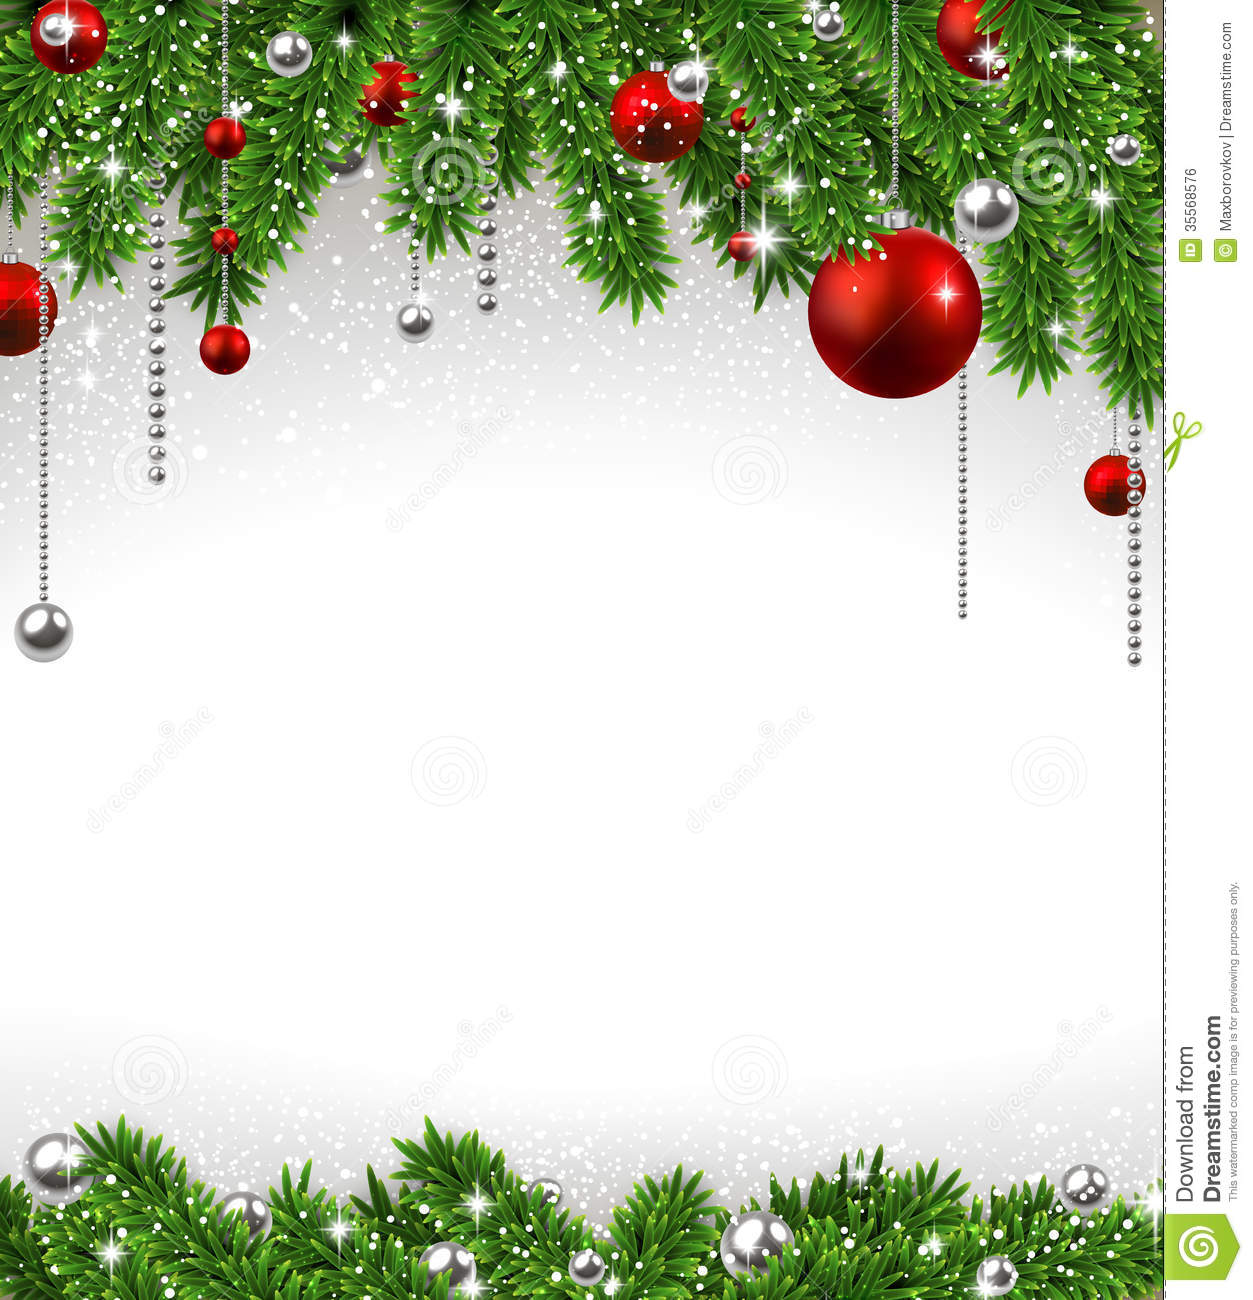 Christmas Backgrounds Free.Christmas Background Pictures Sf Wallpaper